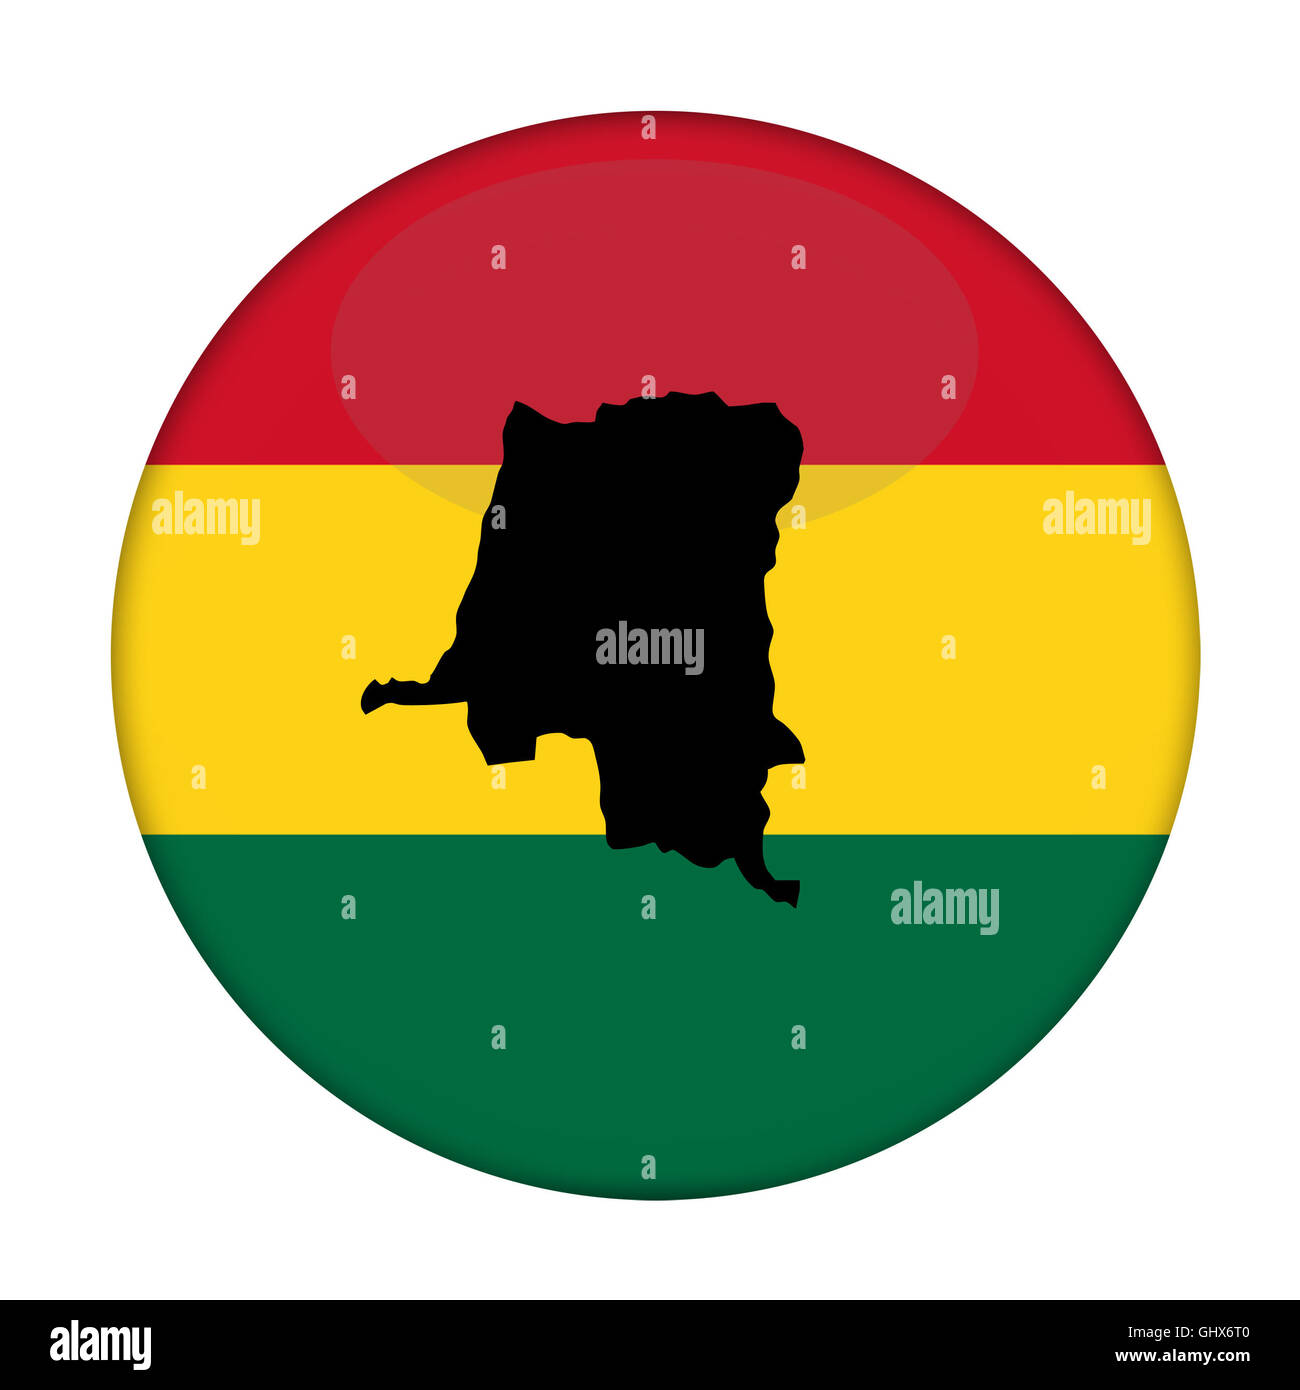 Zaire map on a Rastafarian flag button, white background. - Stock Image